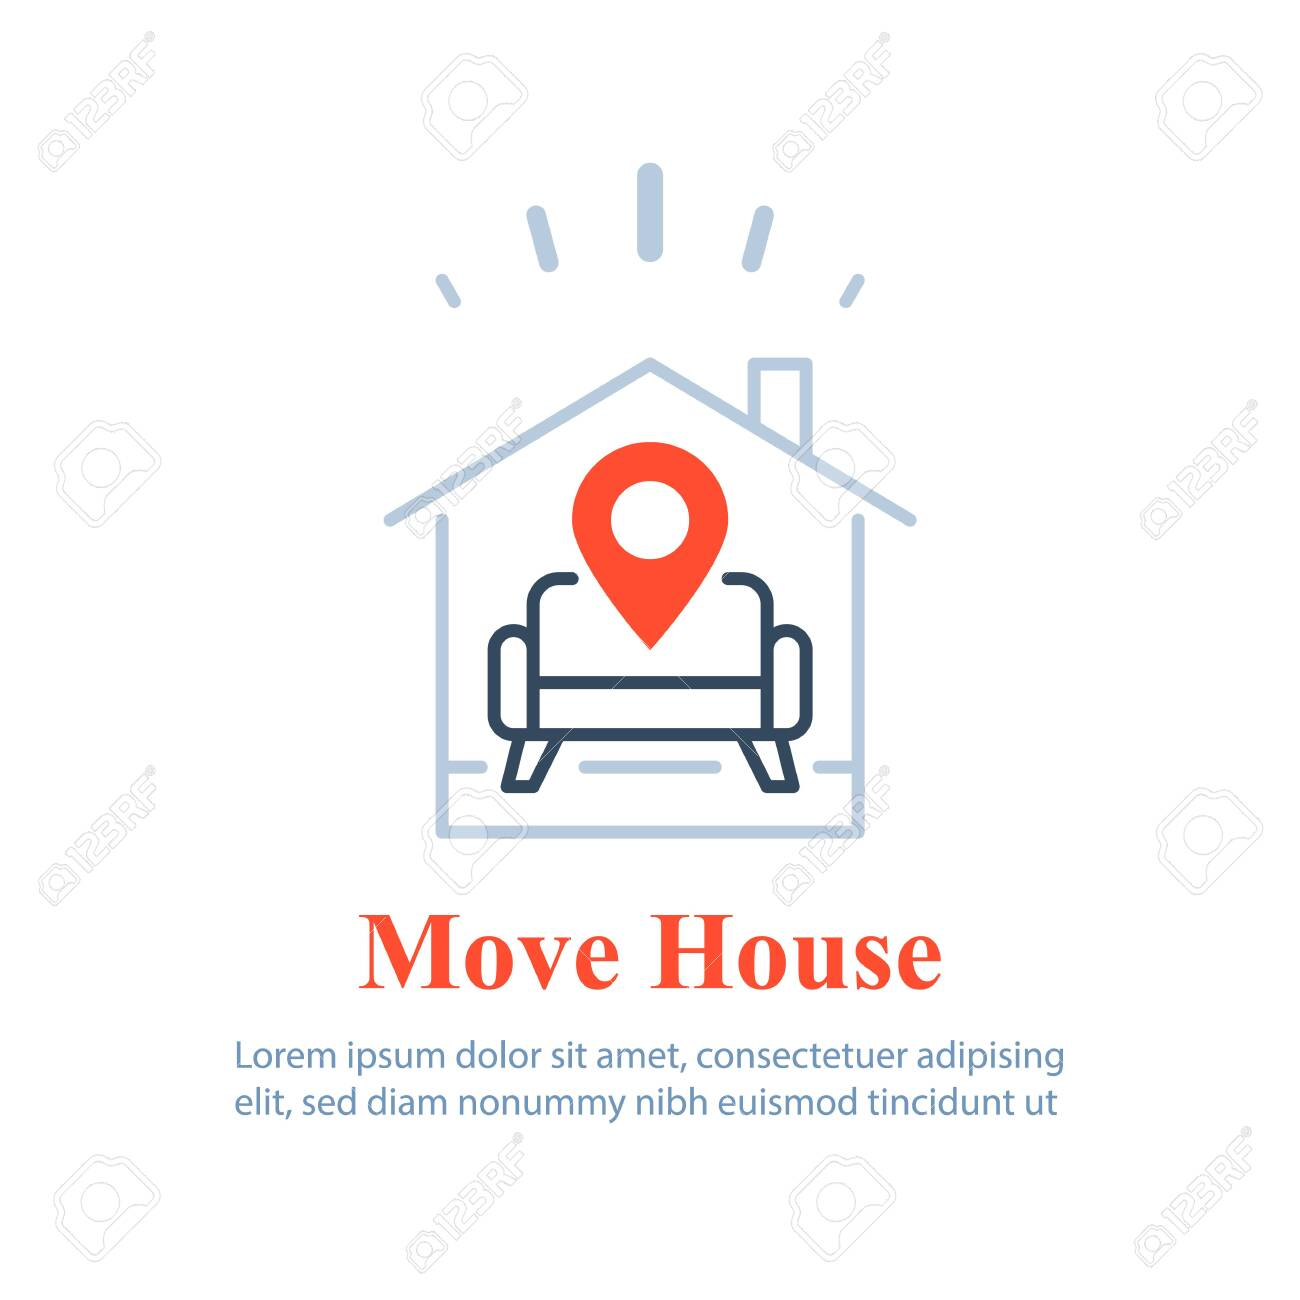 Home delivery services, move house , find apartment to rent, rental estate, guesthouse concept, vector line icon - 144943756